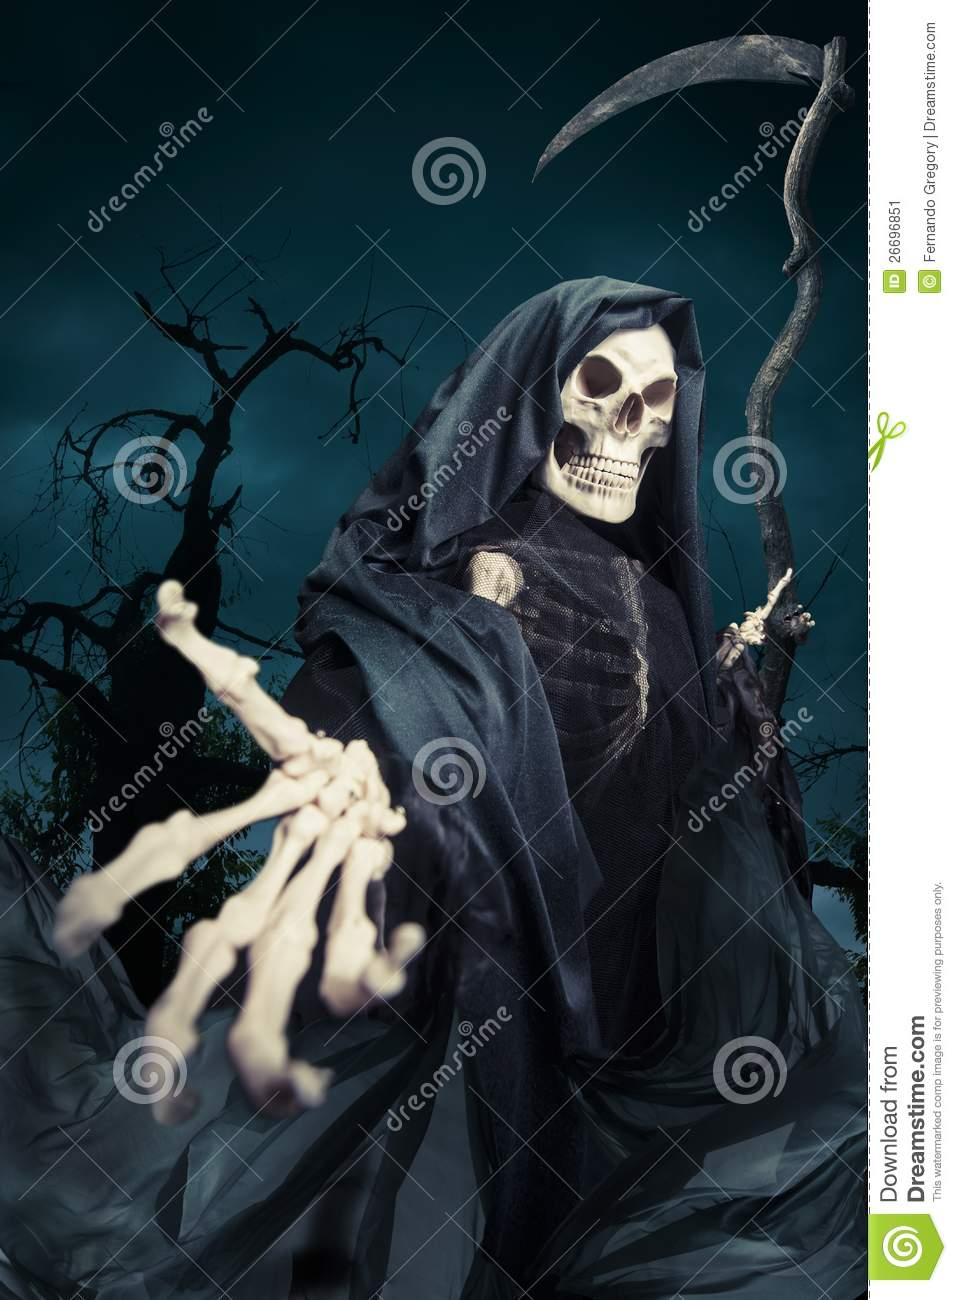 Grim Reaper/ Angel Of Death At Night Stock Image - Image: 26696851